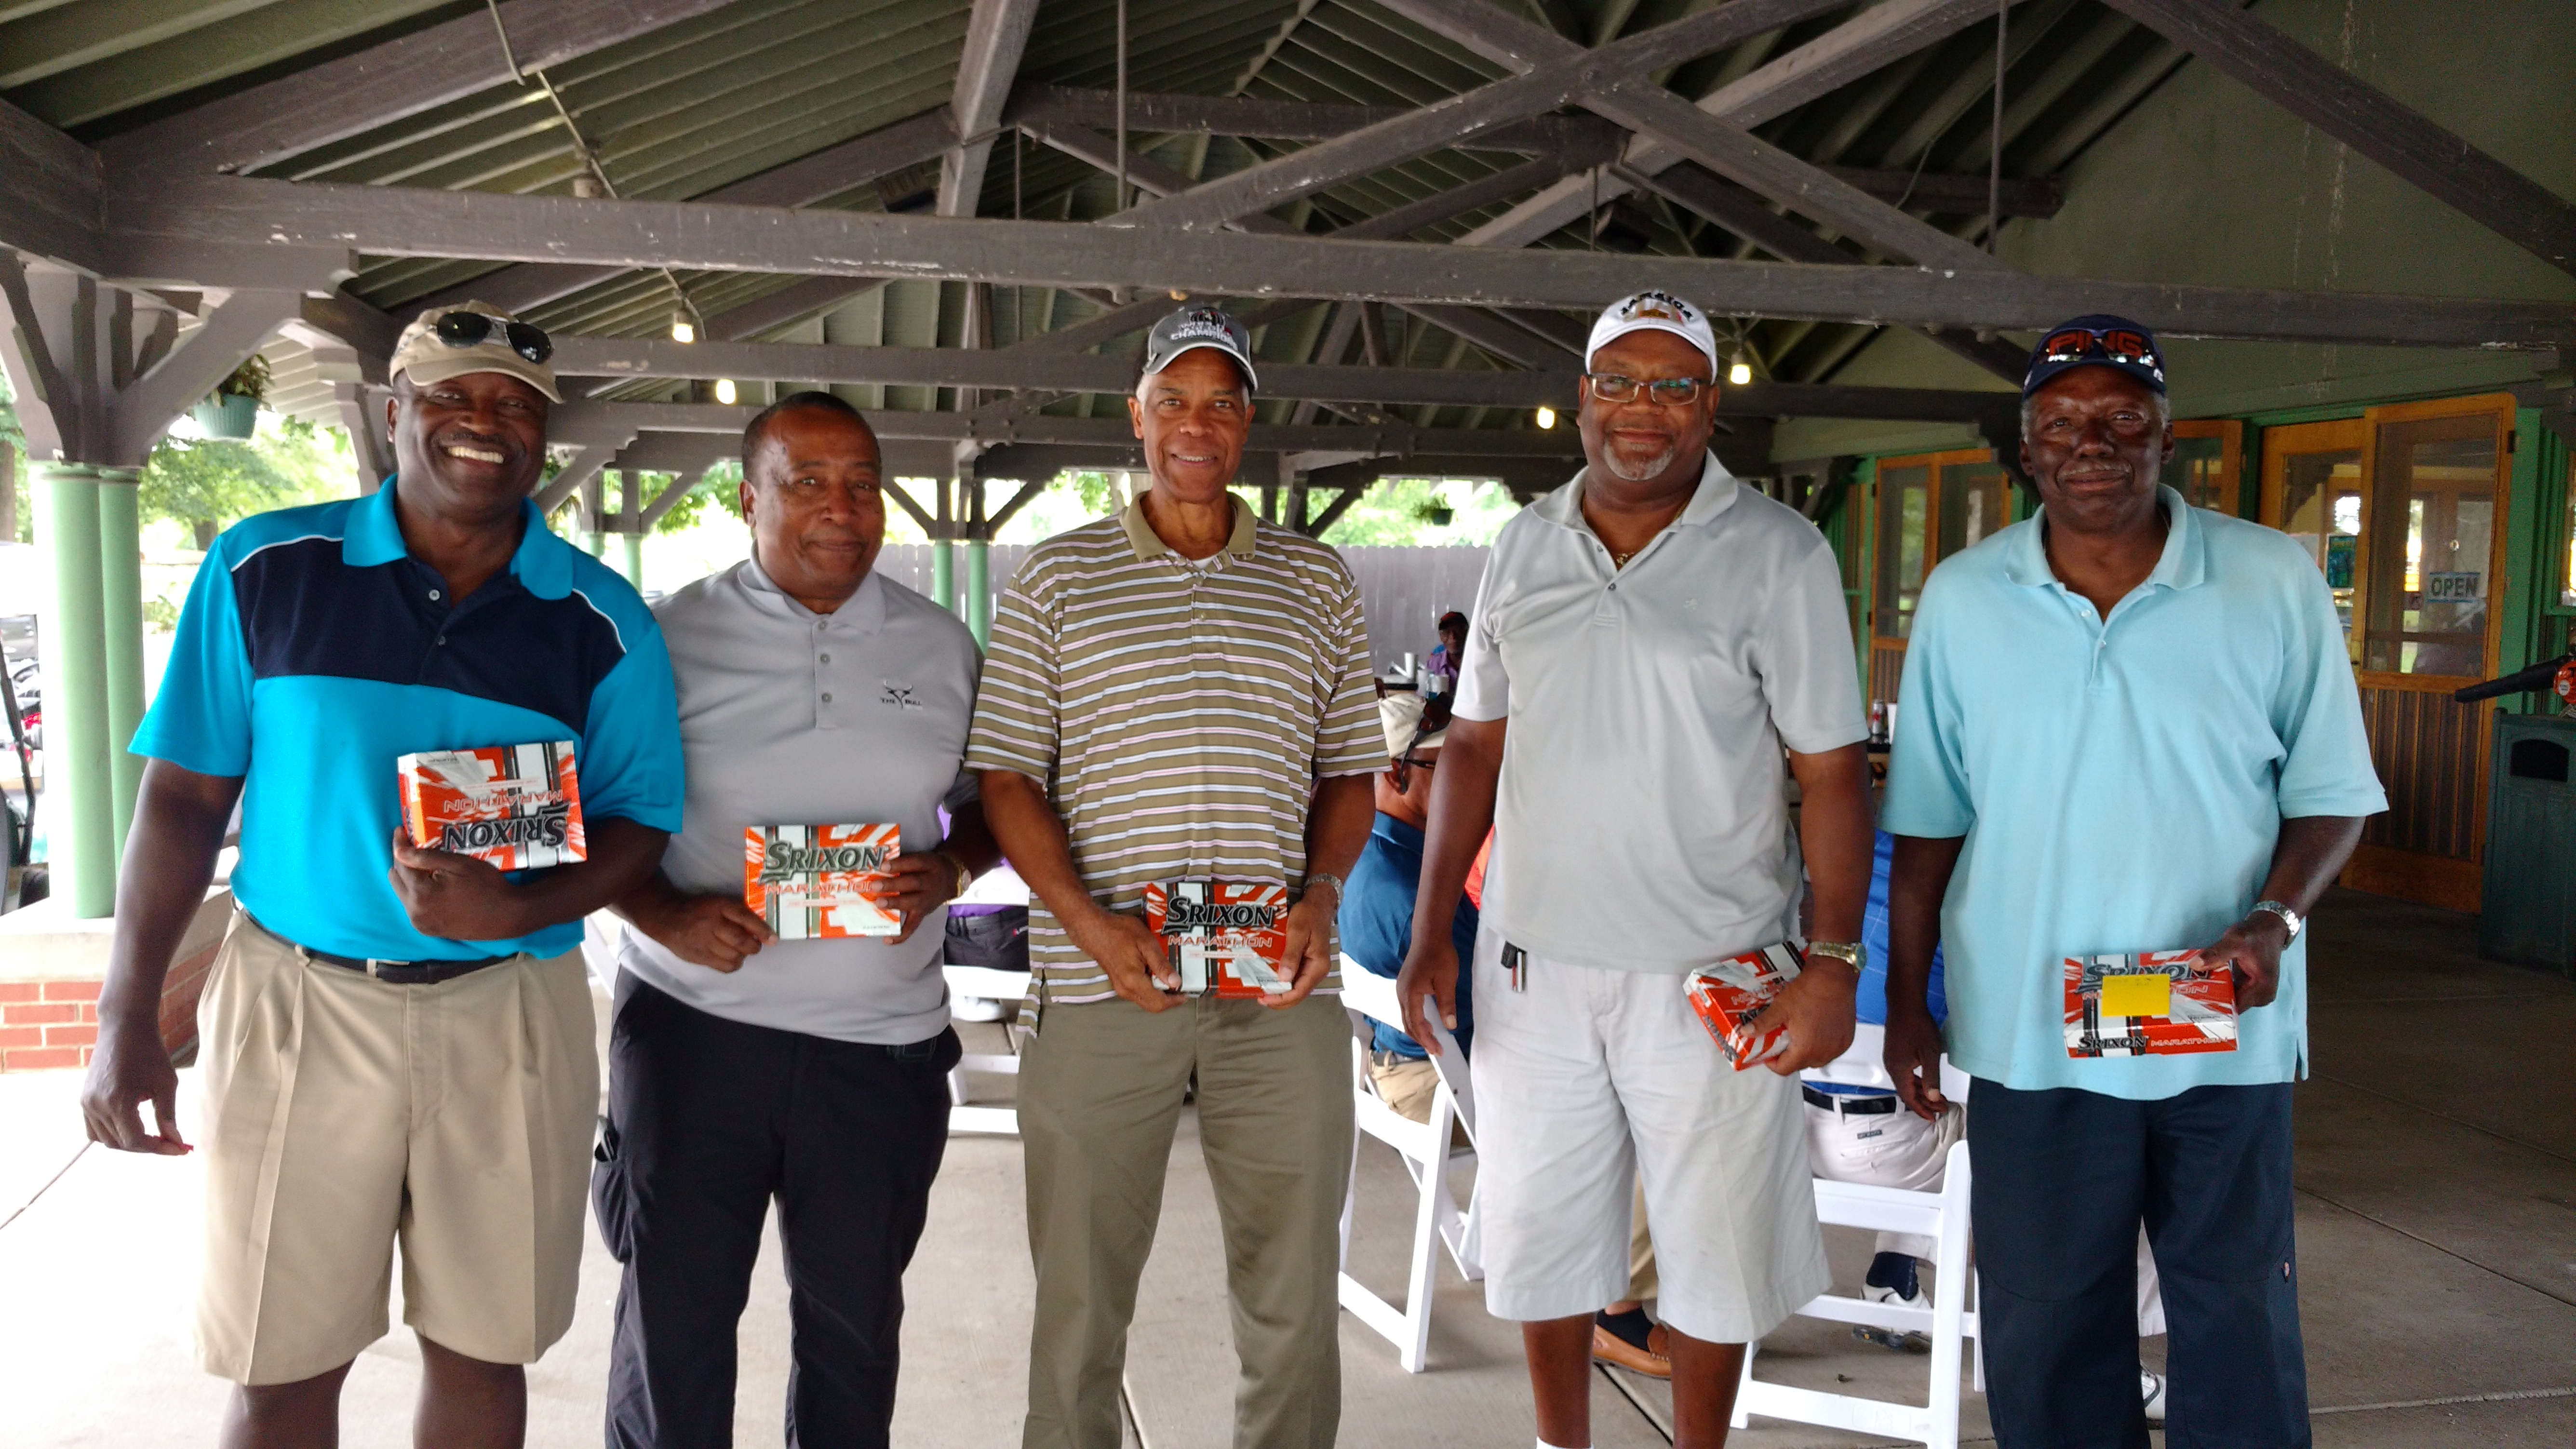 2016 MEN'S LEAGUE/CLOSEST TO THE PIN WINNERS